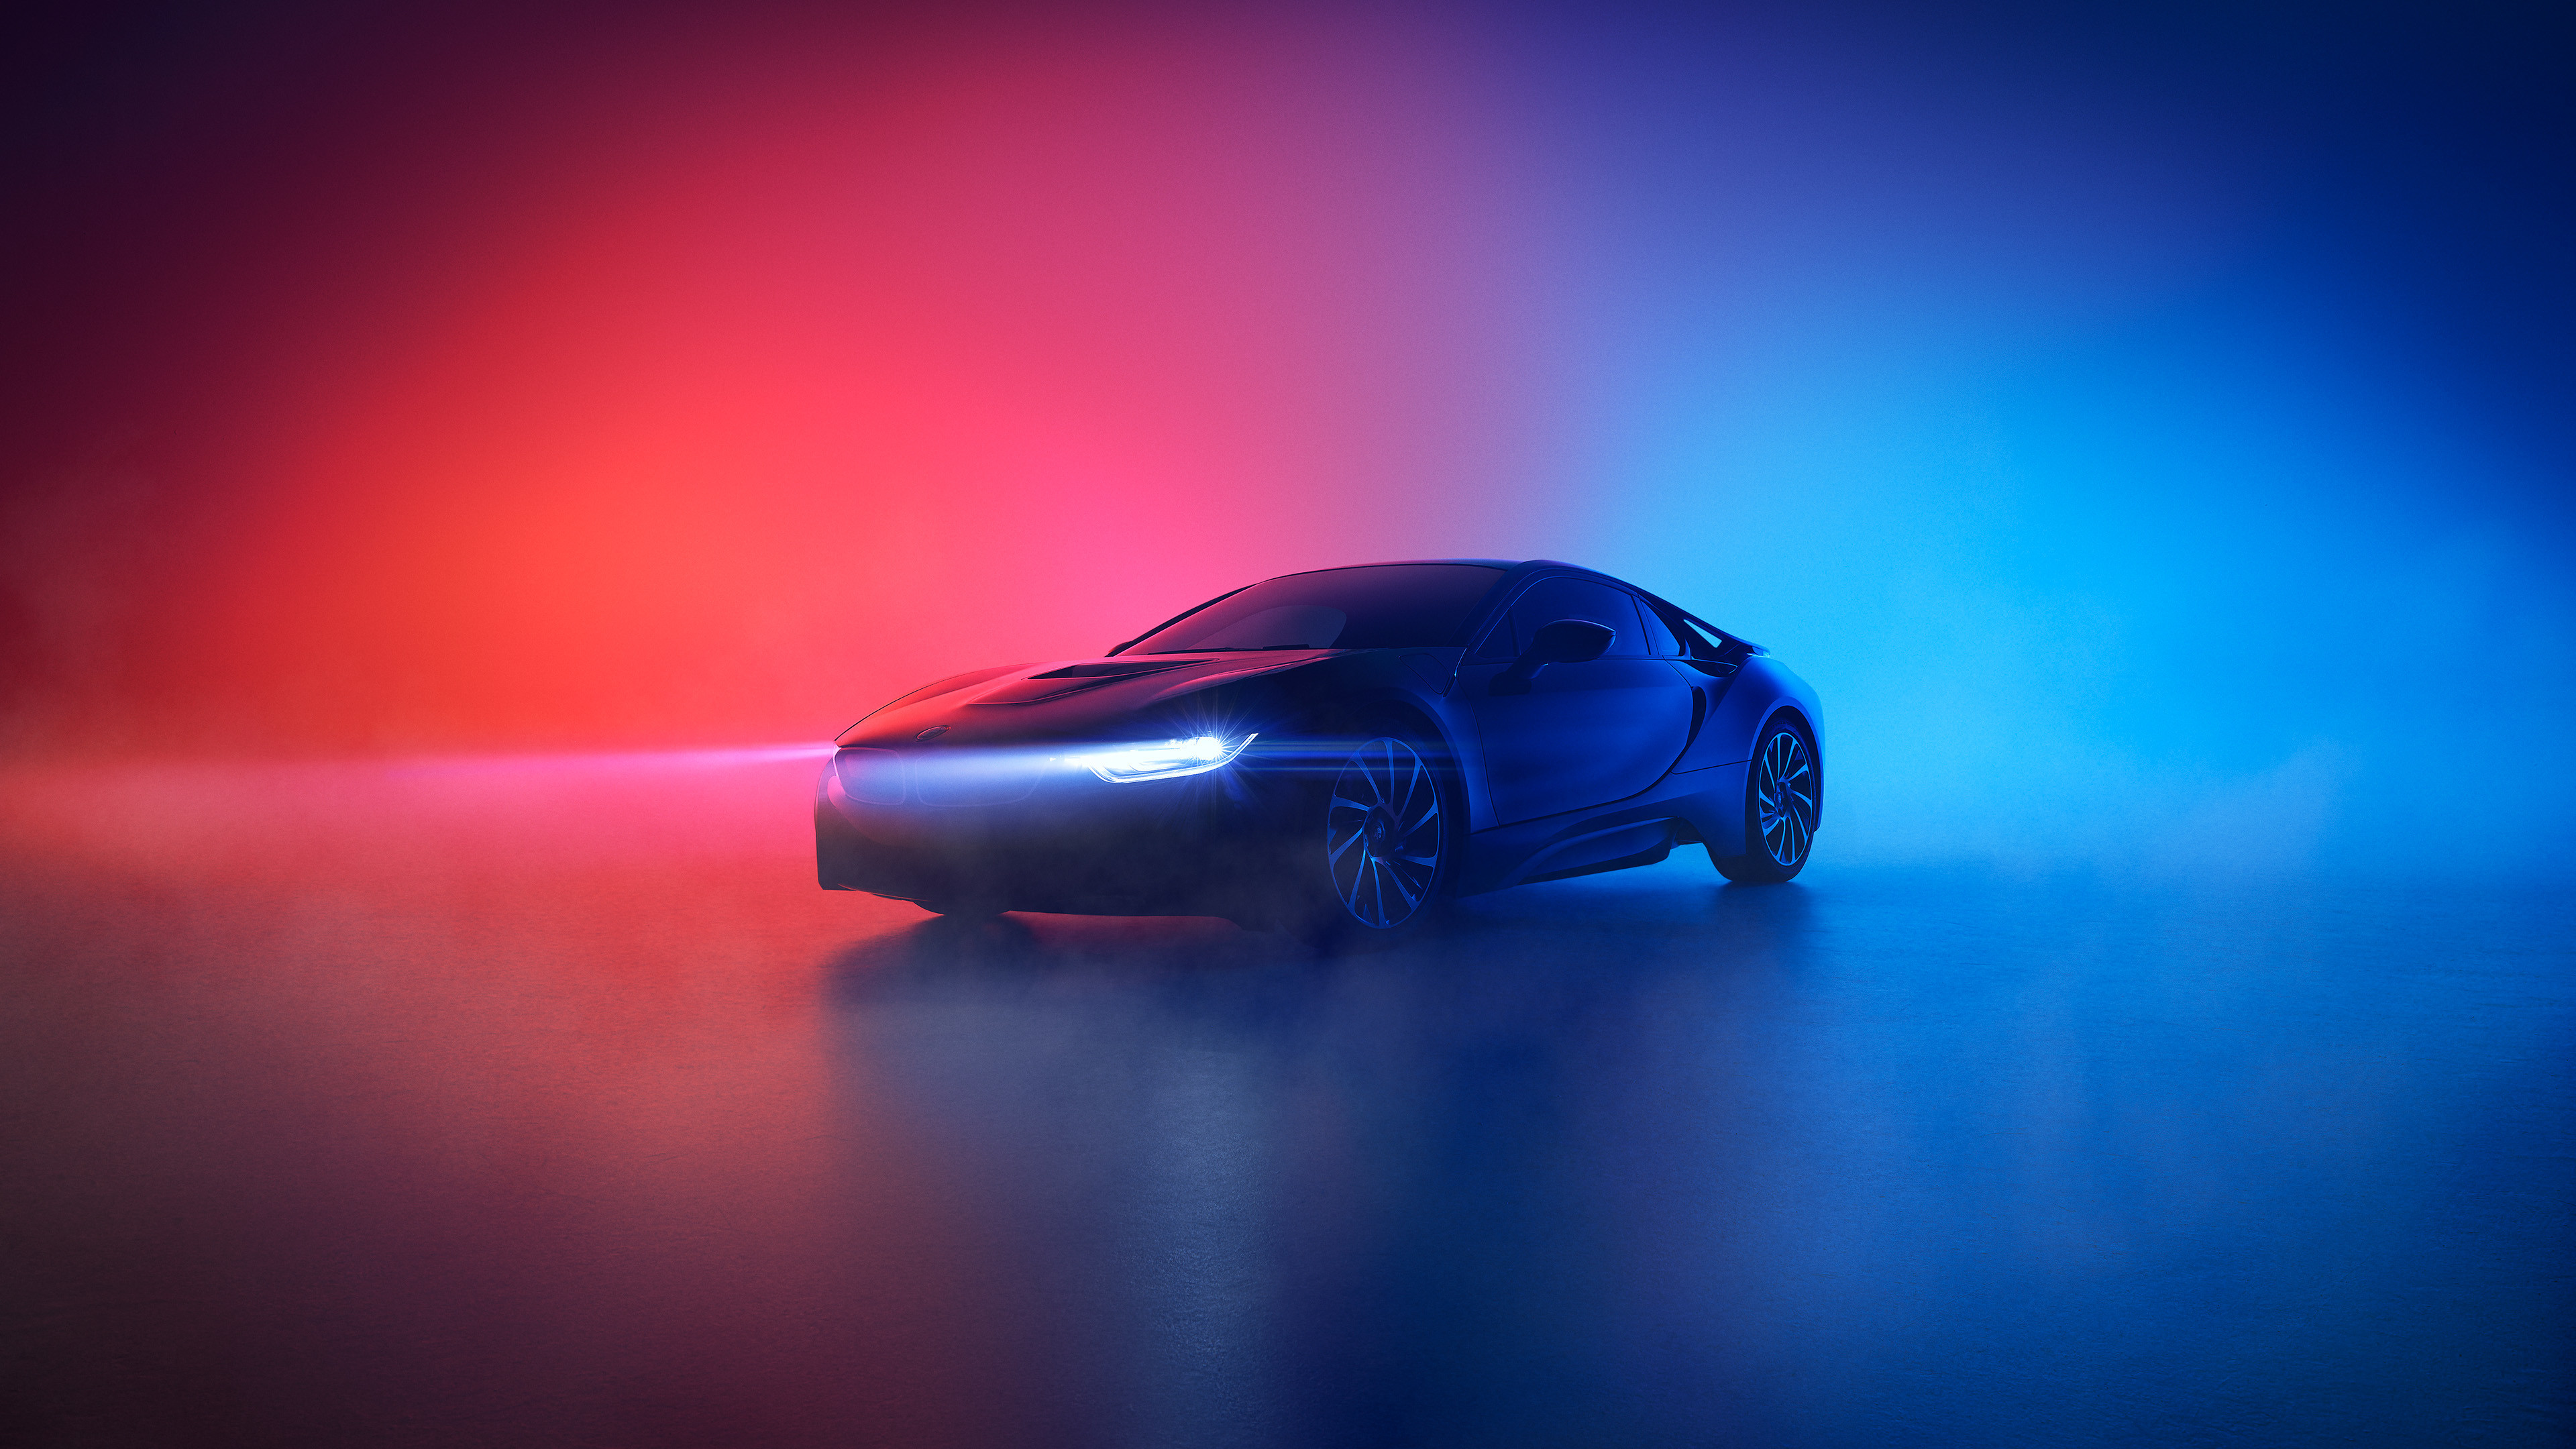 bmw i8 2019 1562107612 - Bmw I8 2019 - hd-wallpapers, cars wallpapers, bmw wallpapers, bmw i8 wallpapers, behance wallpapers, artist wallpapers